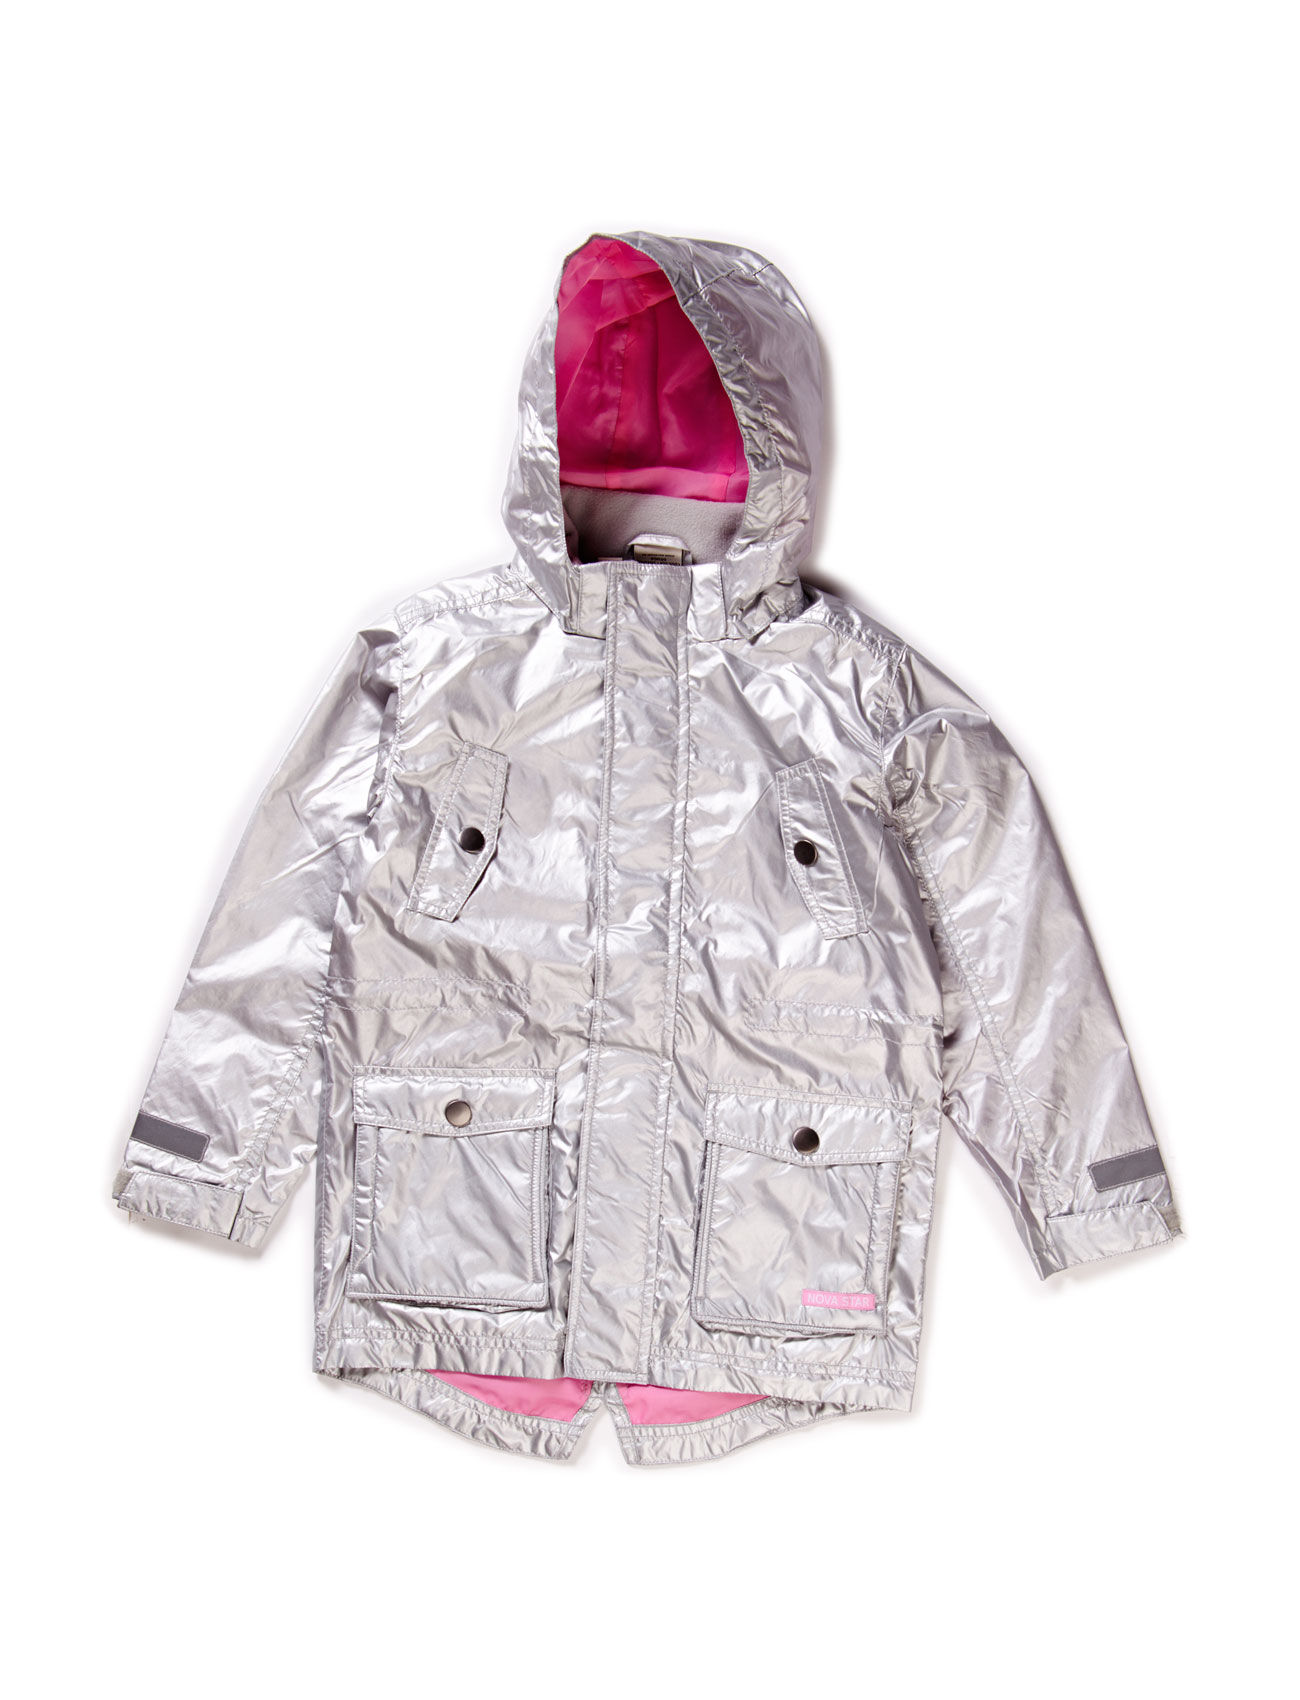 Parkas Star Silver, Waterproof And Breathable 5,000mm